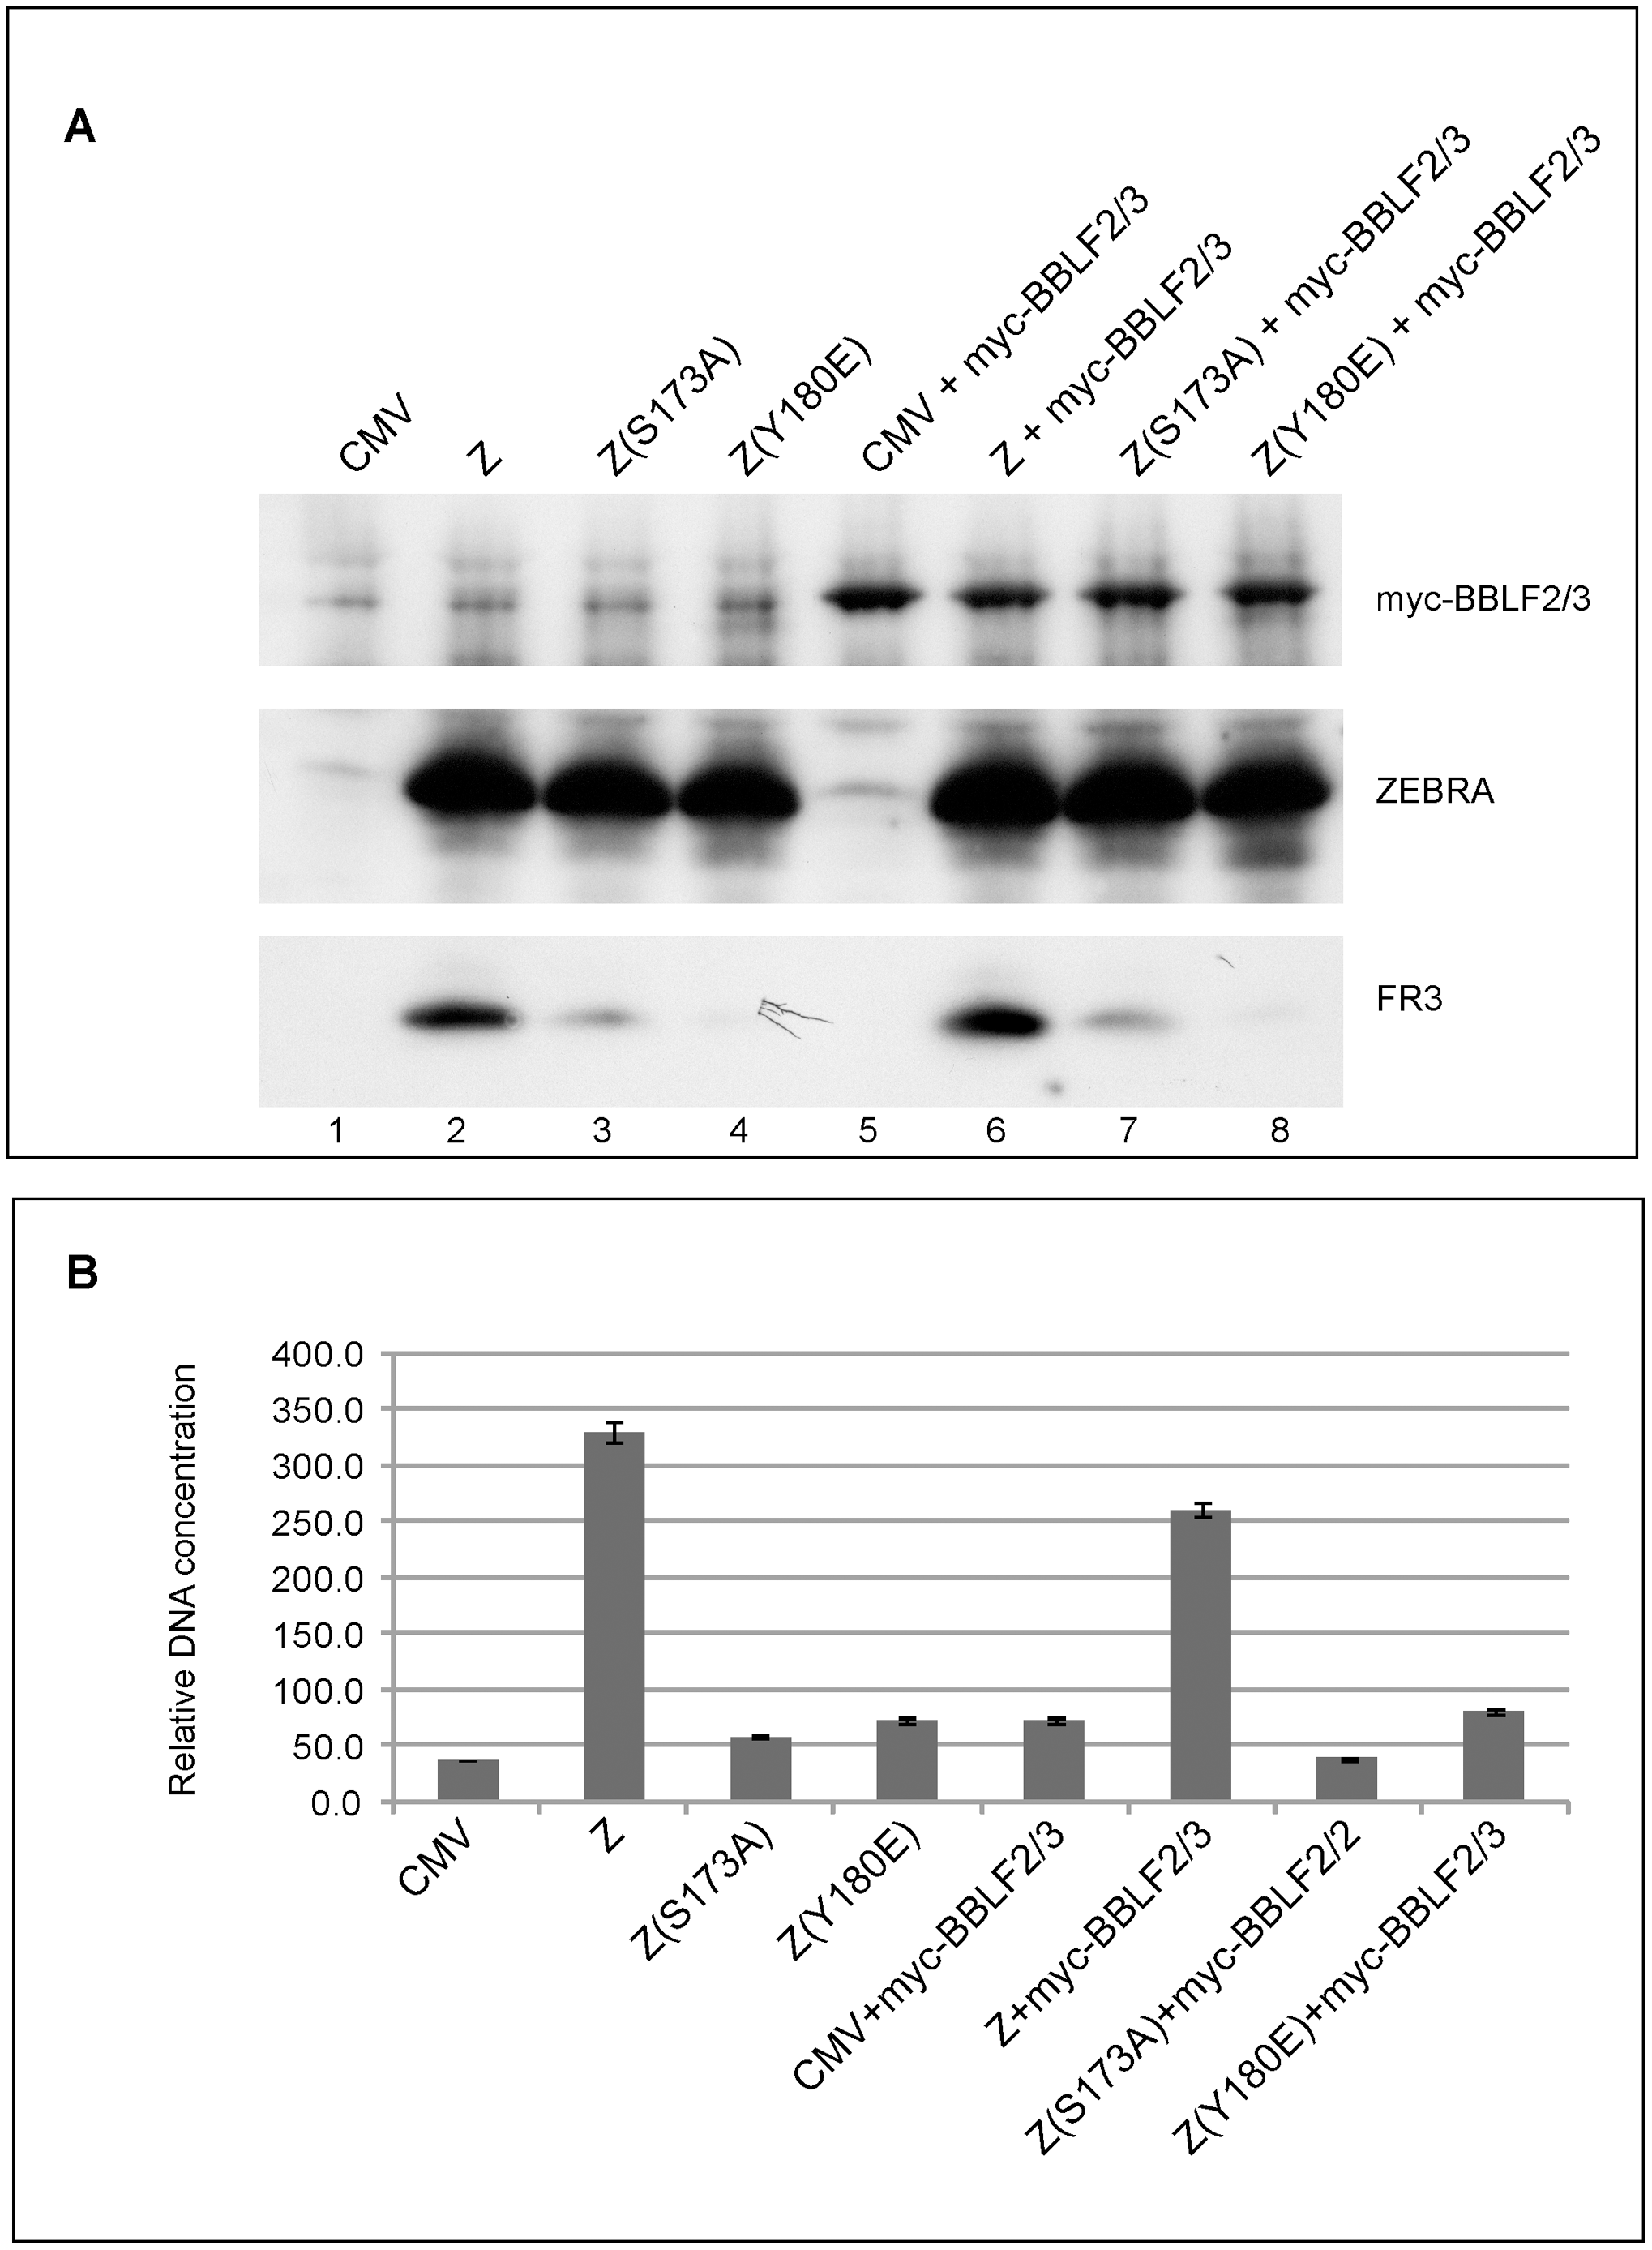 Over-expression of BBLF2/3 fails to complement the defect in ZEBRA mutants impaired in lytic viral replication and late gene expression.